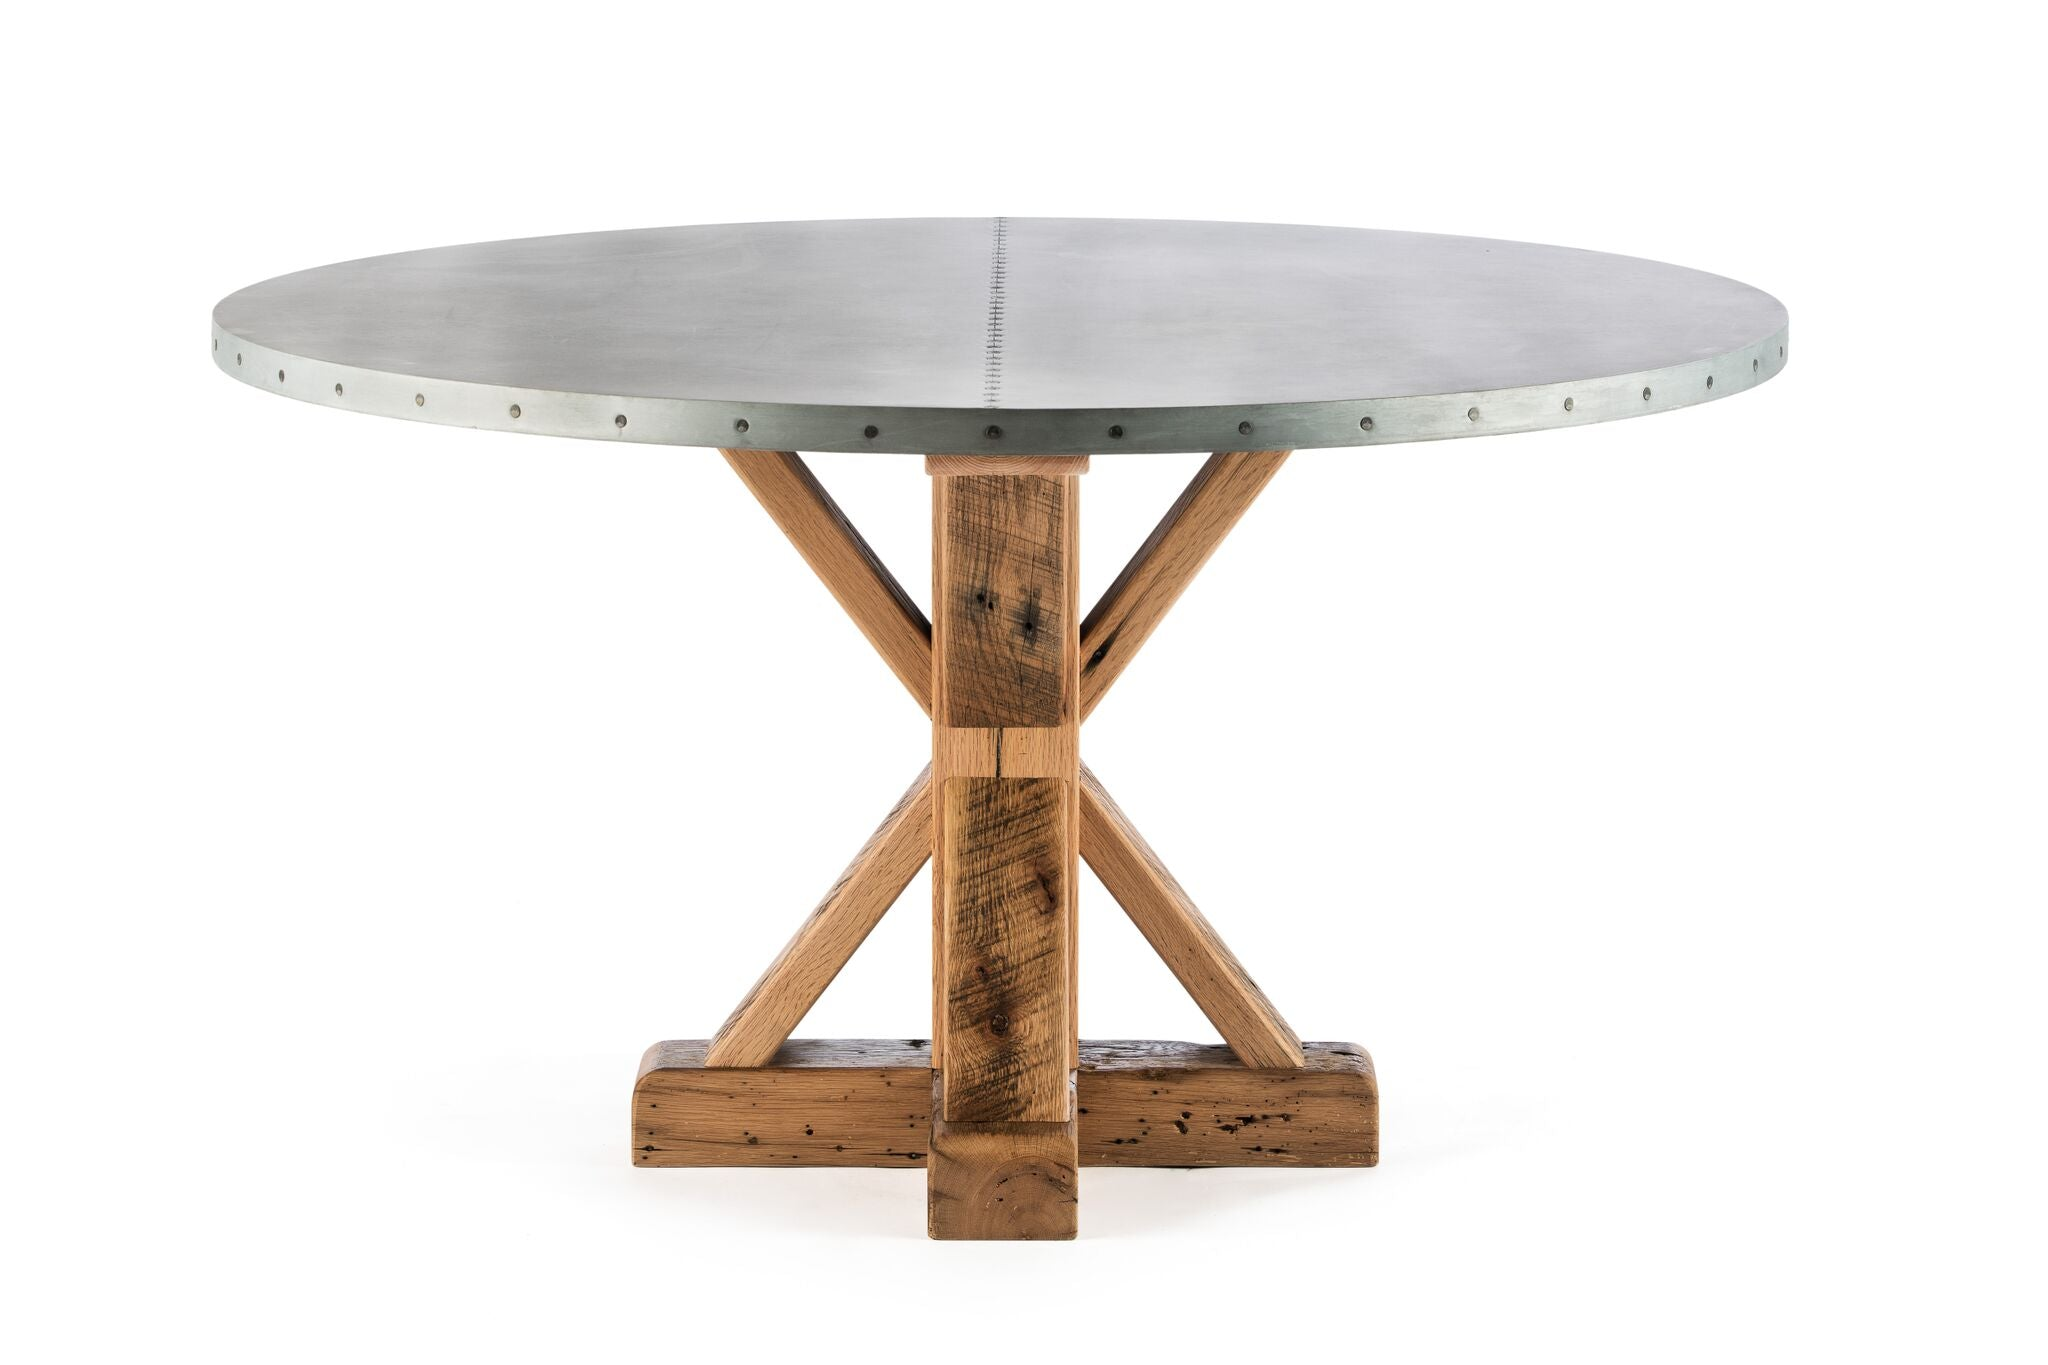 Zinc Round Tables | French Trestle Table | BLACKENED BRONZE | Dark Black Walnut | CUSTOM SIZE D 72 H 30 | 2"